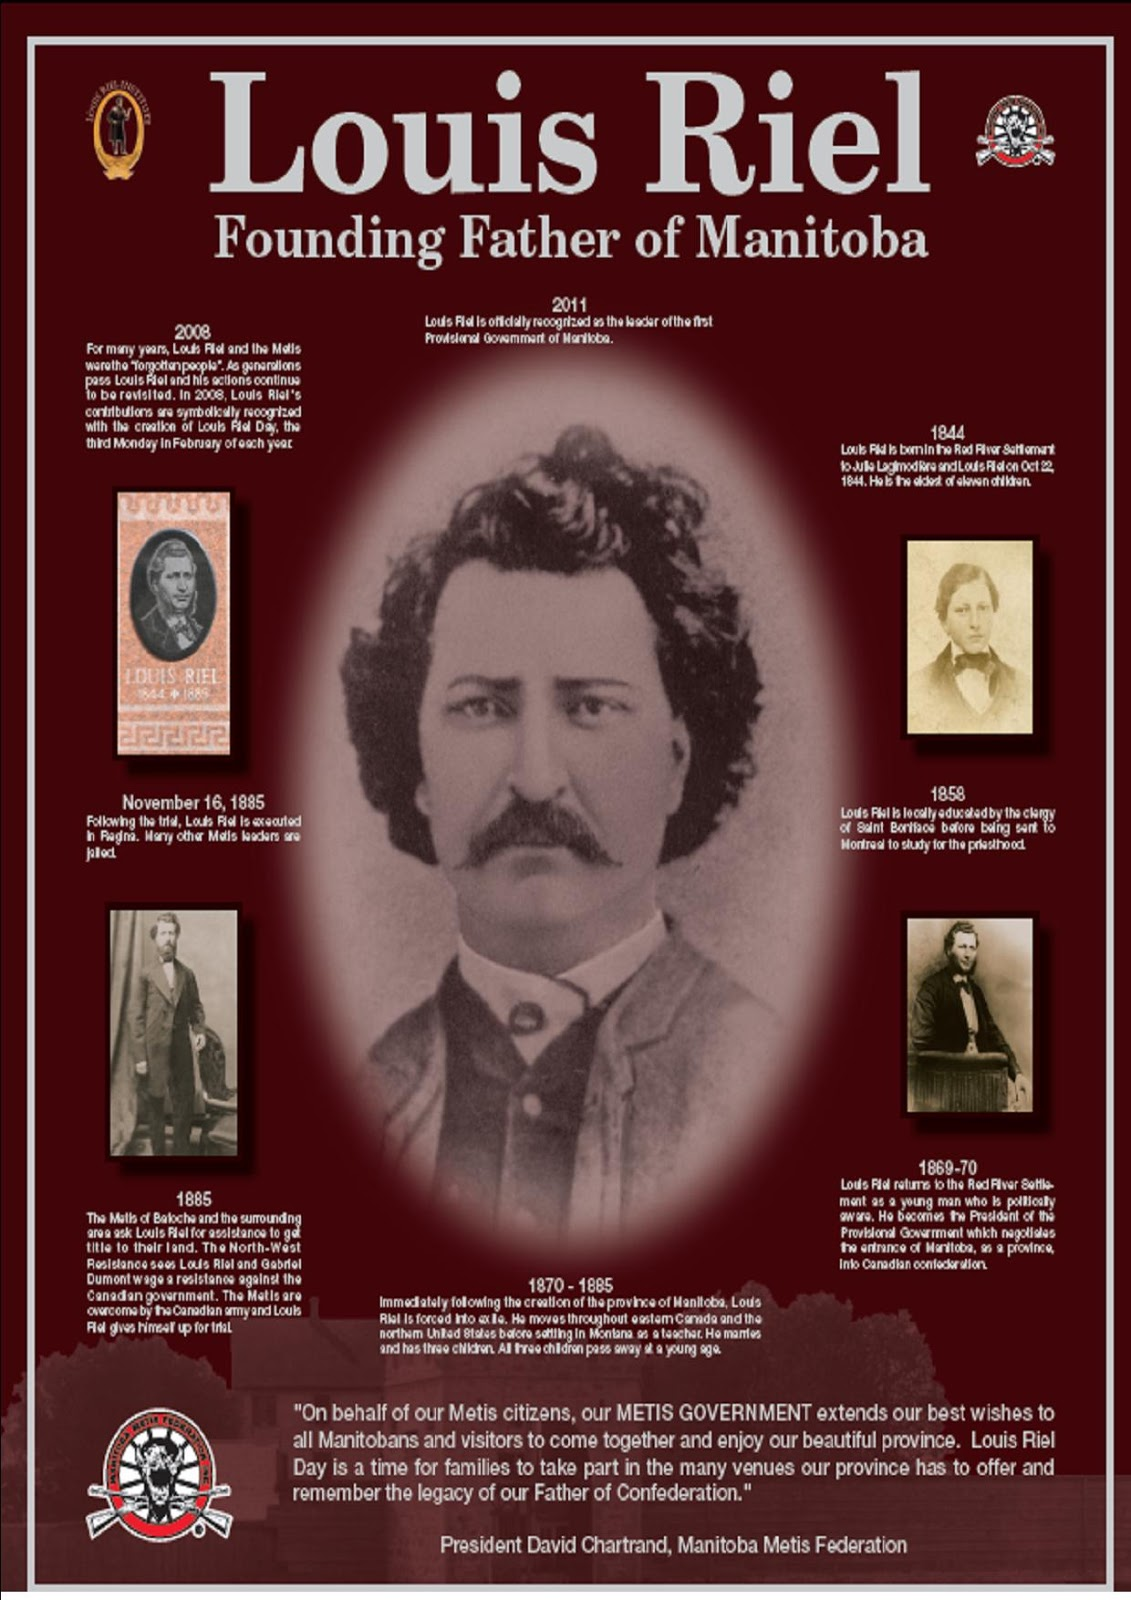 louis riel and gabriel dumont essay Riel names, many called been has riel louis prophet, a called been has he statesman, a scoundrel, a hero, a madman, a visionary, a hero, a traitor, a described best is riel louis but treason, of guilty is riel louis that believe i ways many in.